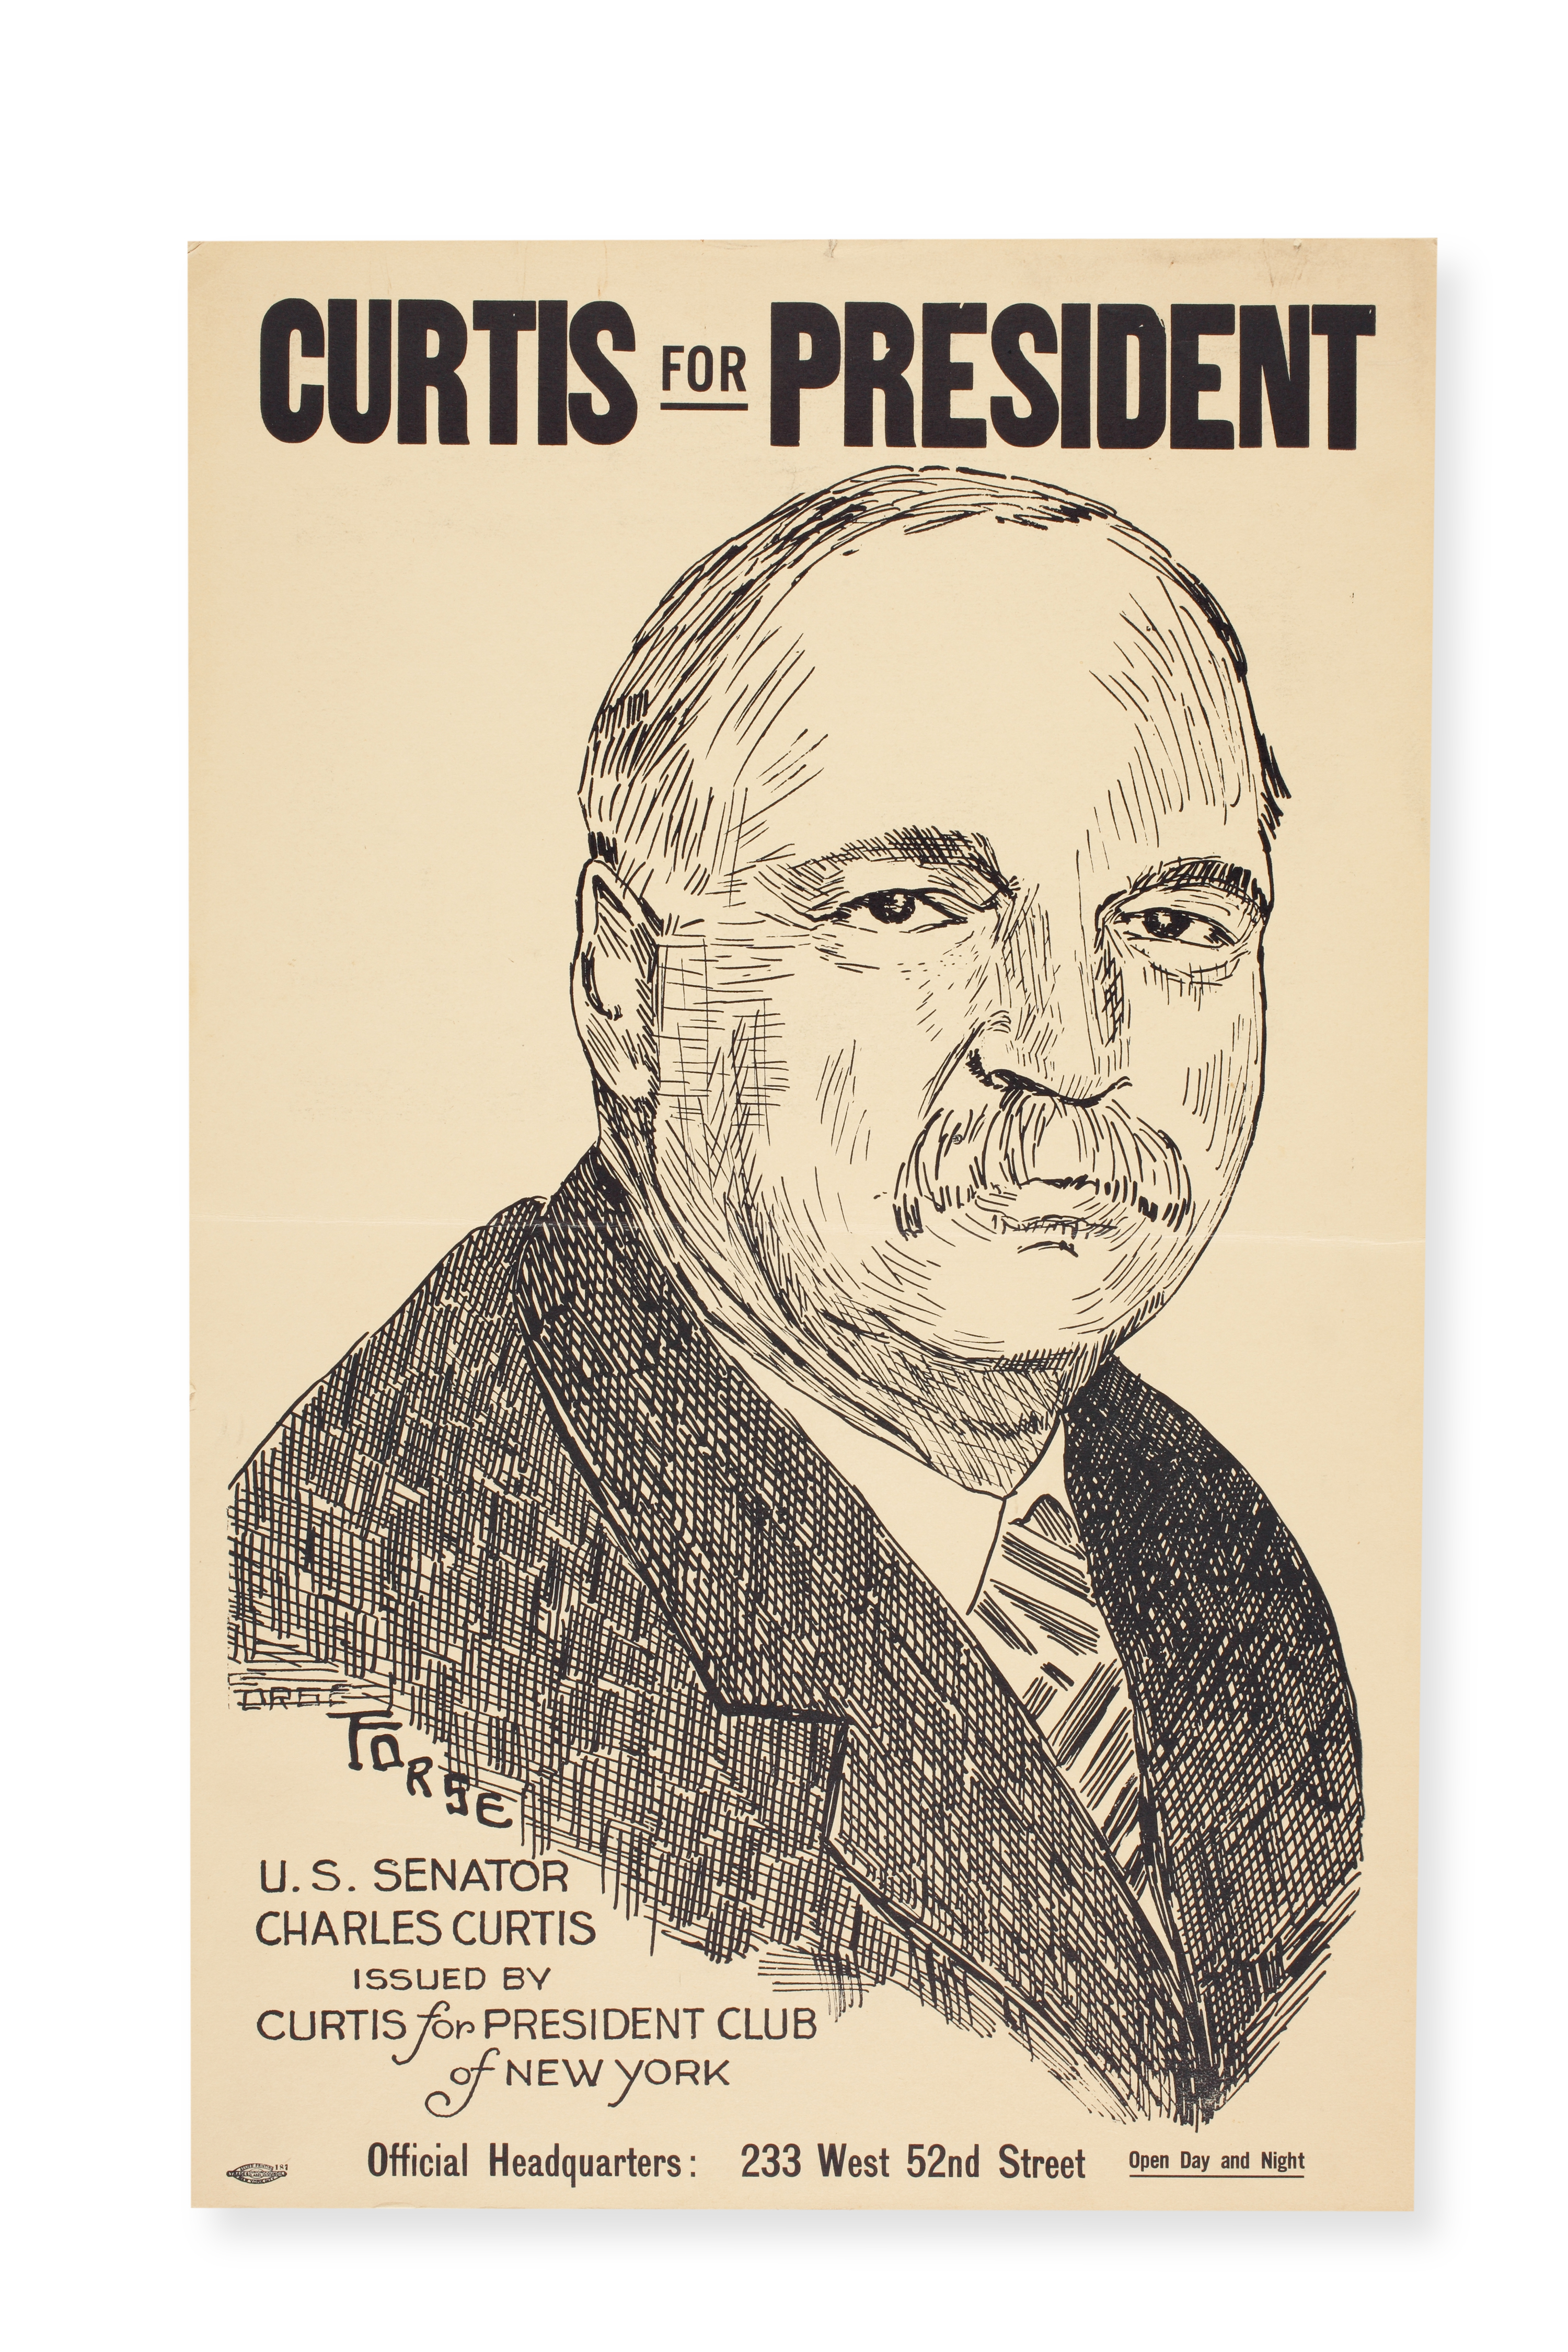 Poster for 1928 Curtis for president campaign